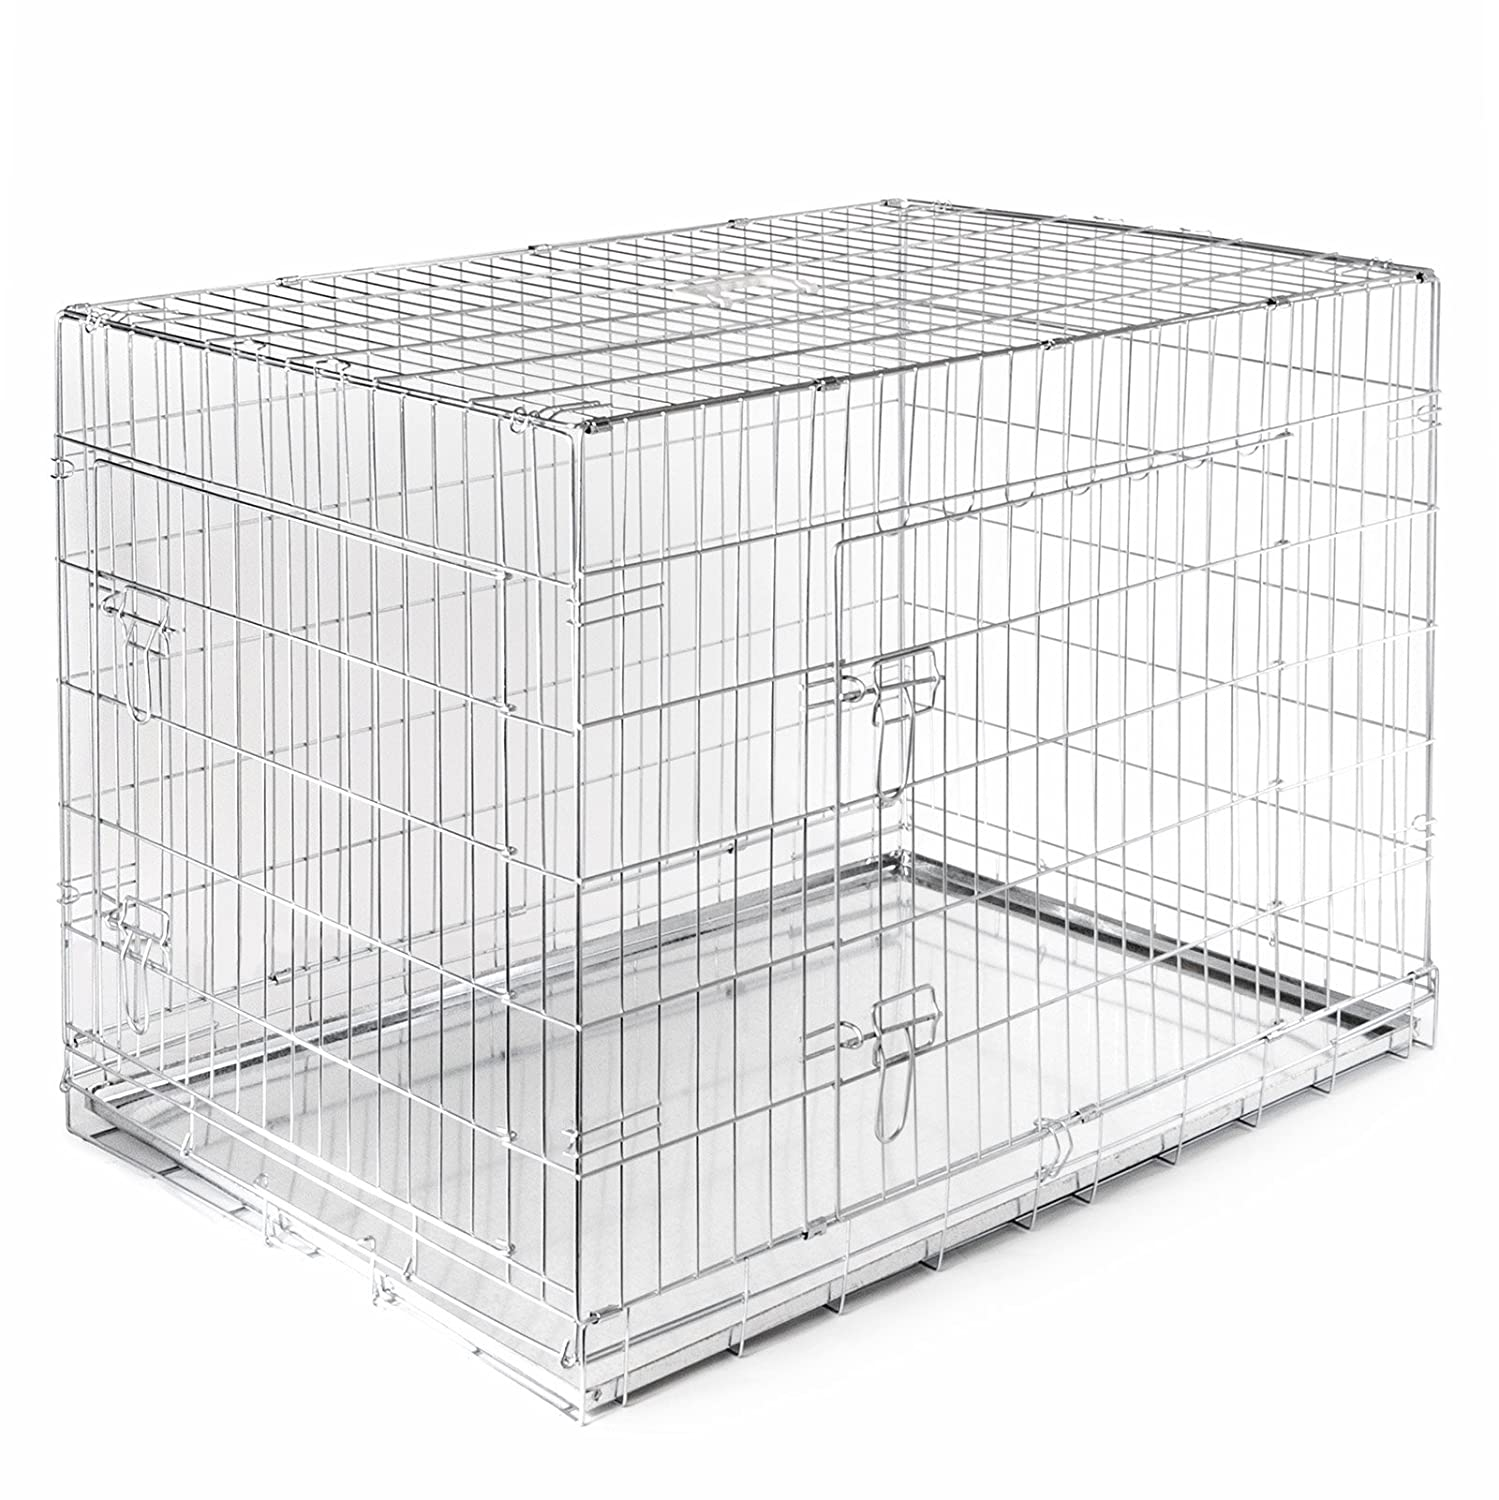 amazoncom  smithbuilt folding double door cage metal dog crate  - amazoncom  smithbuilt folding double door cage metal dog crate  inlong  pet supplies